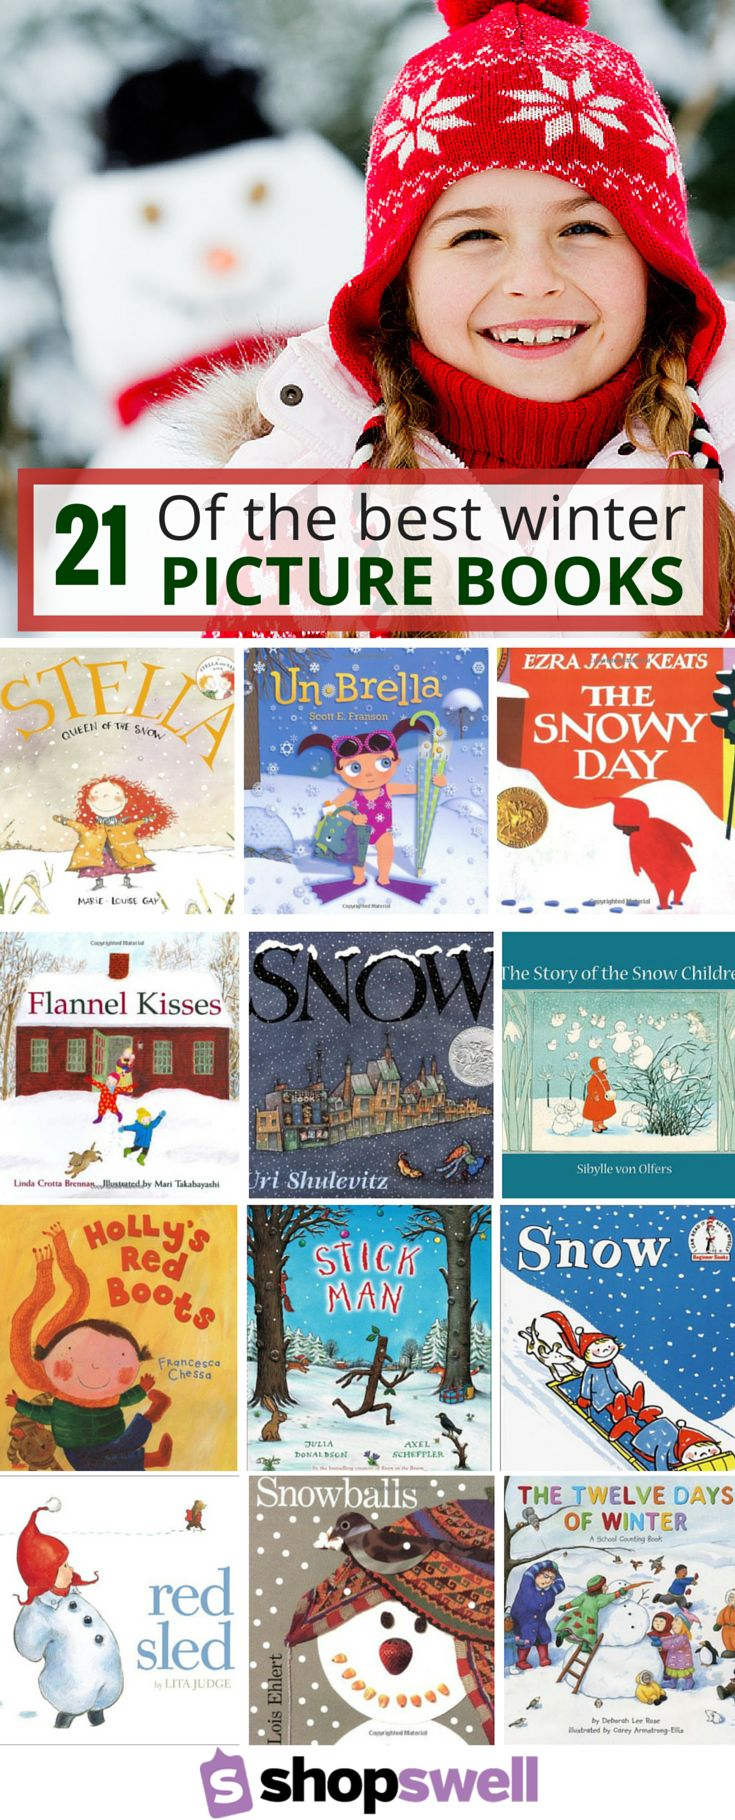 23 of the Best Winter Picture Books to Read with Kids